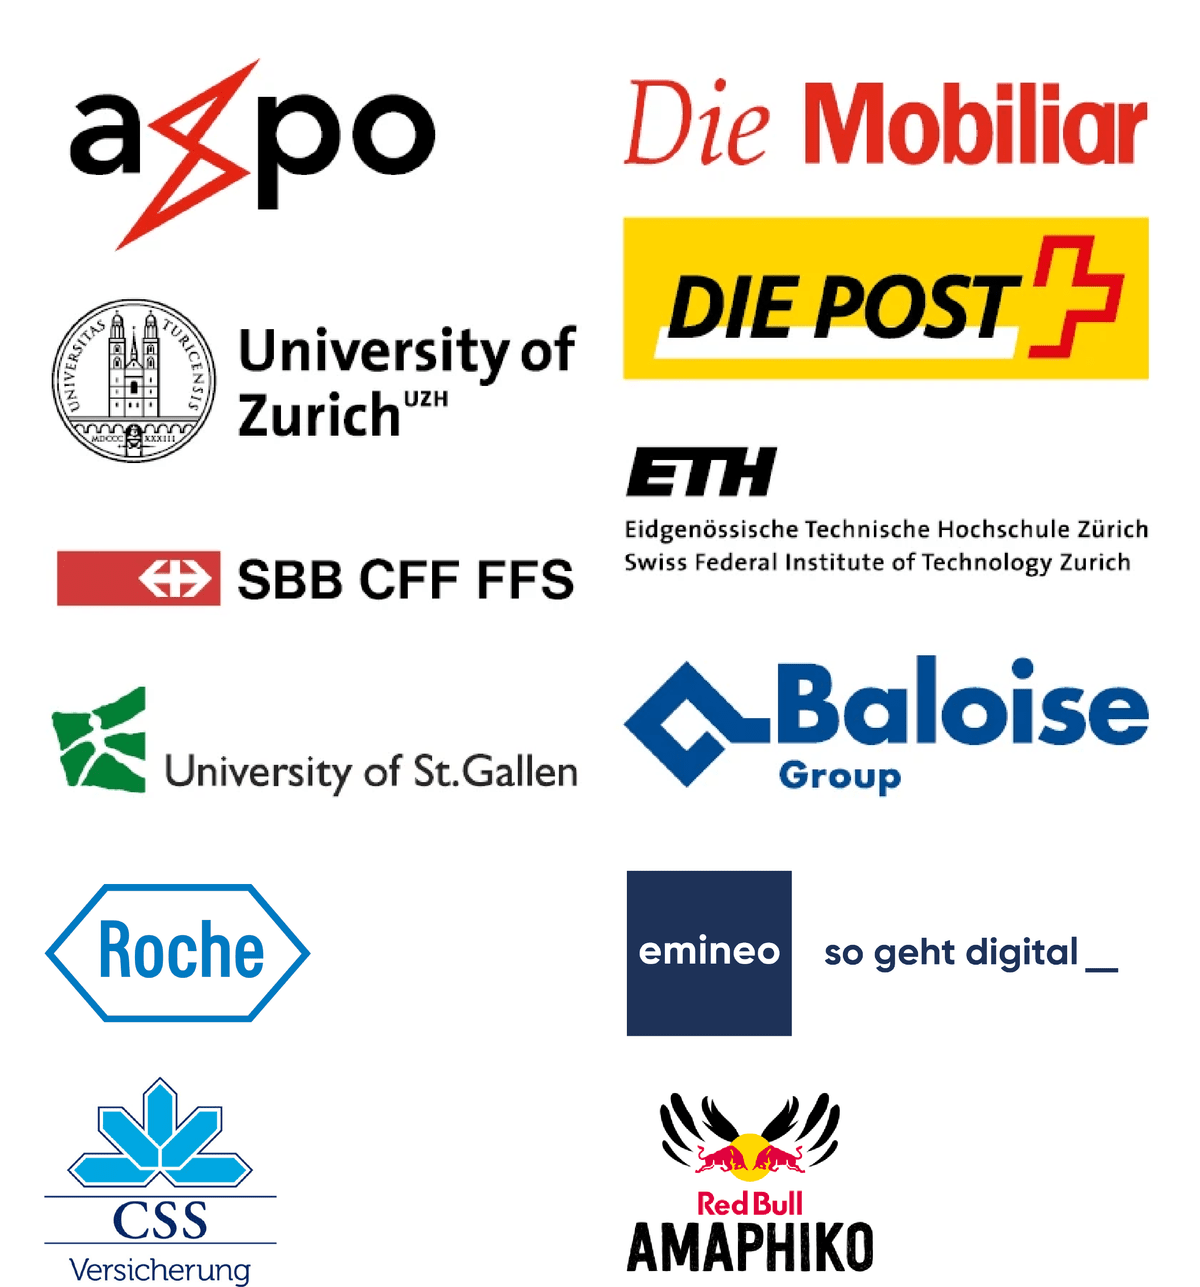 axpo, mobi, mobiliar, uzh, university of zurich, ETH, Post, SBB, Baloise, HSG, University of St. Gallen